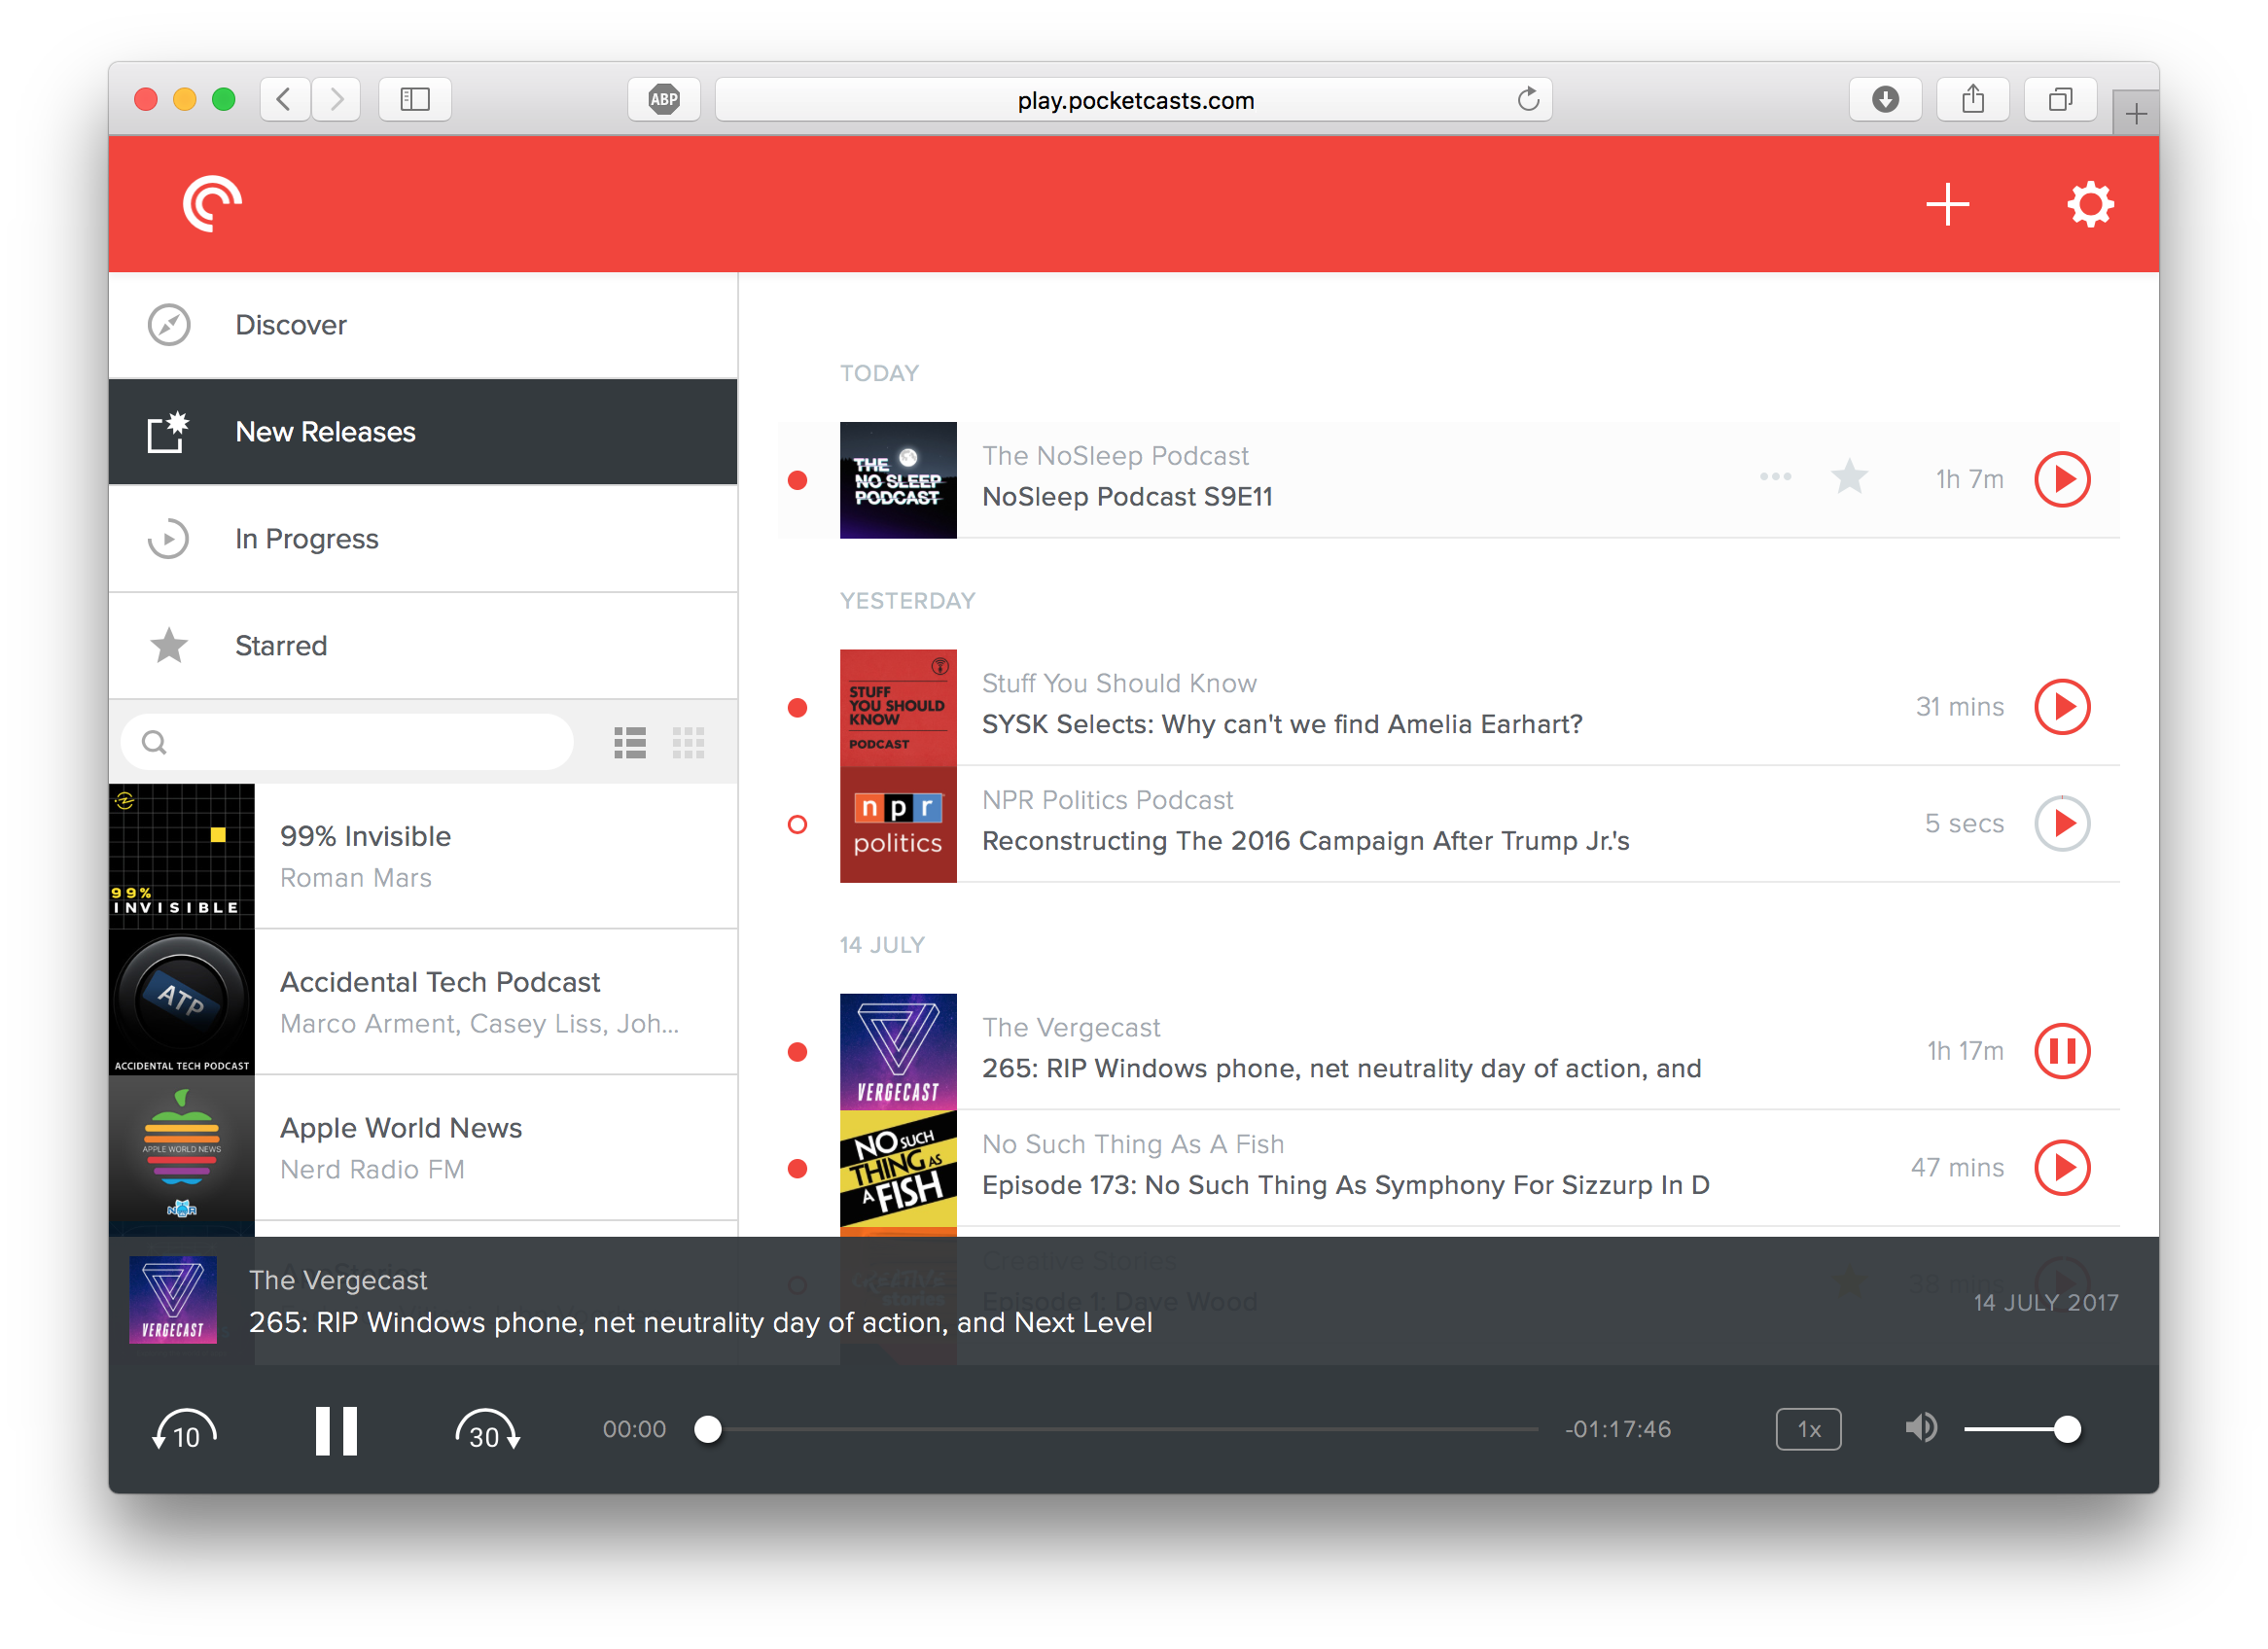 Pocket Casts Web UI